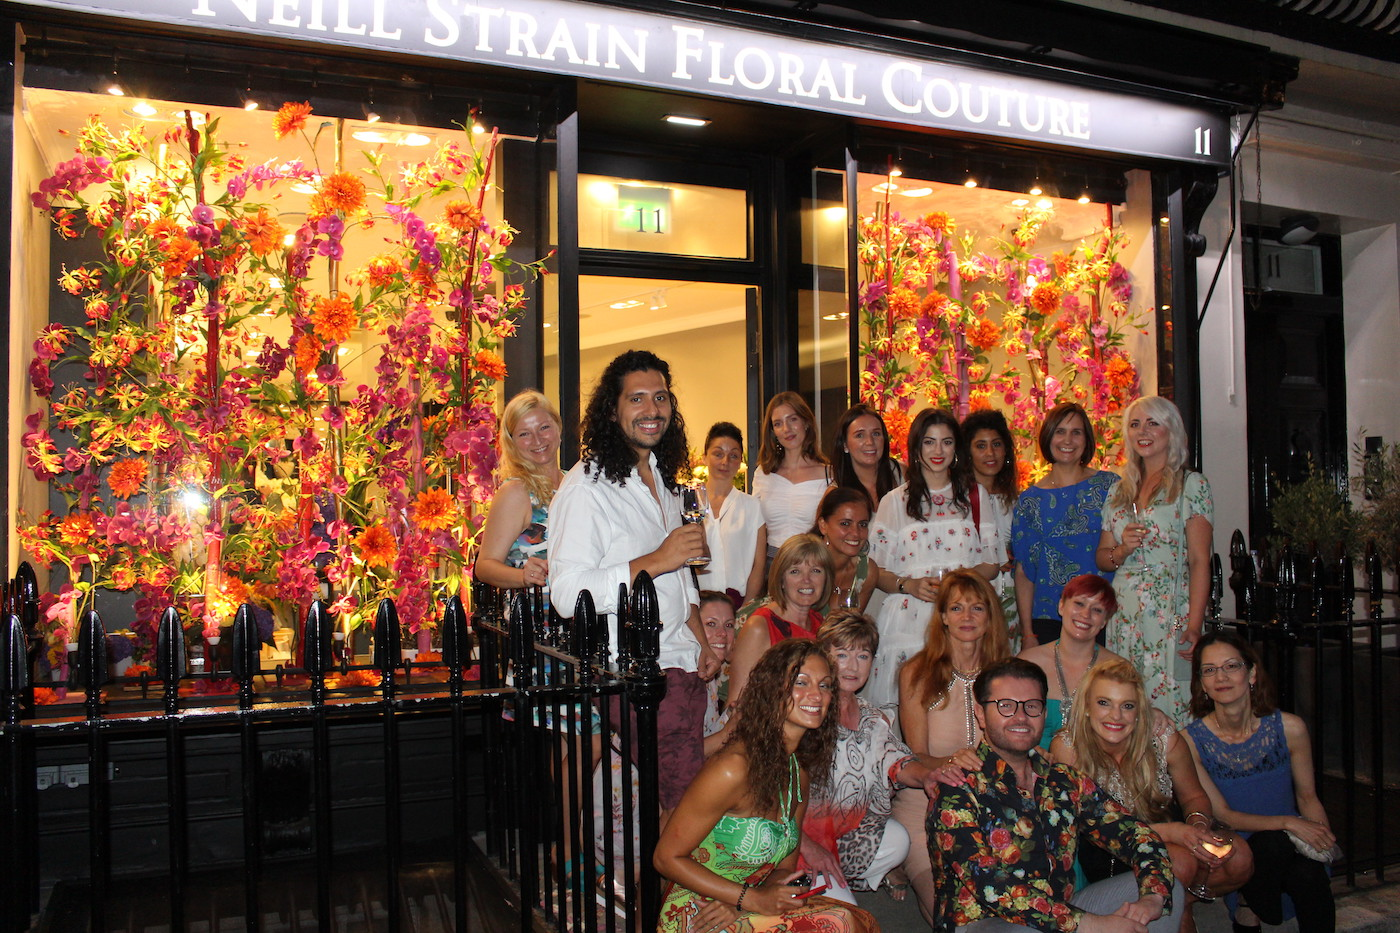 The Neill Strain Floral Couture team celebrating the 10th anniversary of the business.